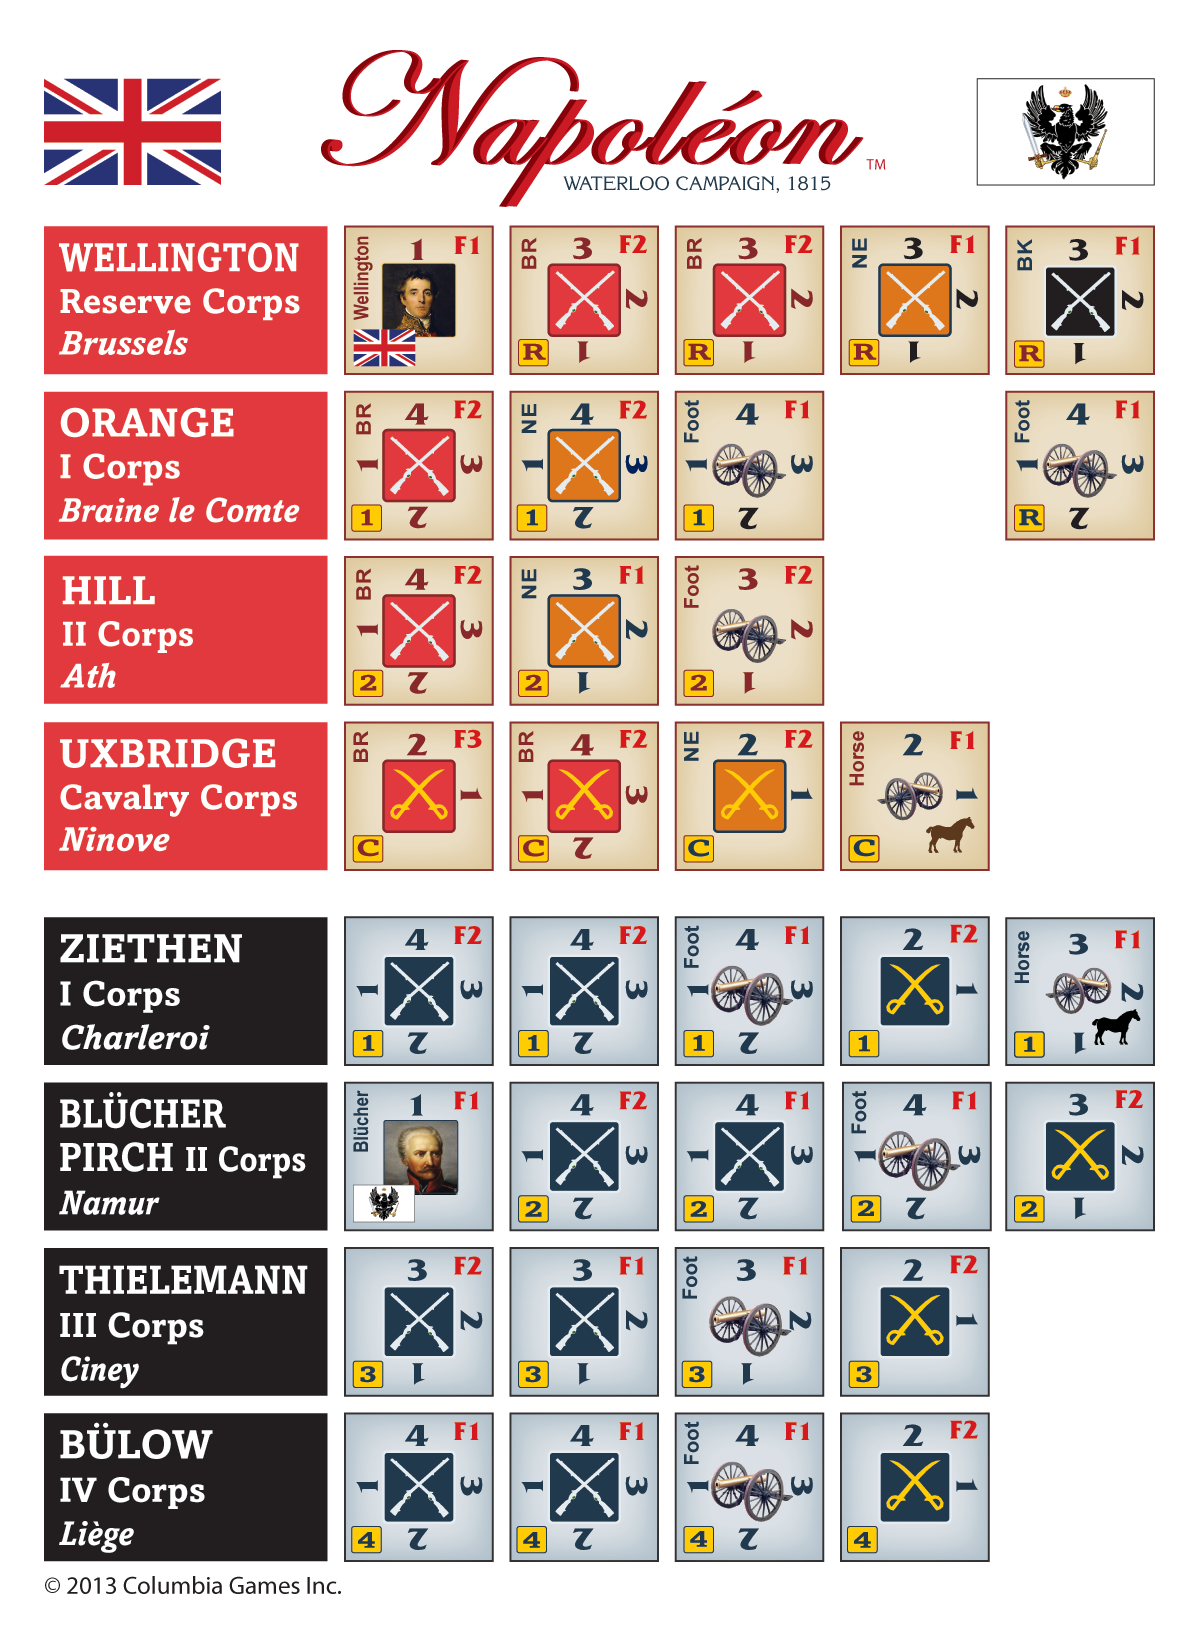 Shows the Allied Armies in the Waterloo campaign. Includes both the British and Dutch forces under Wellington and the Prussian forces under Blucher